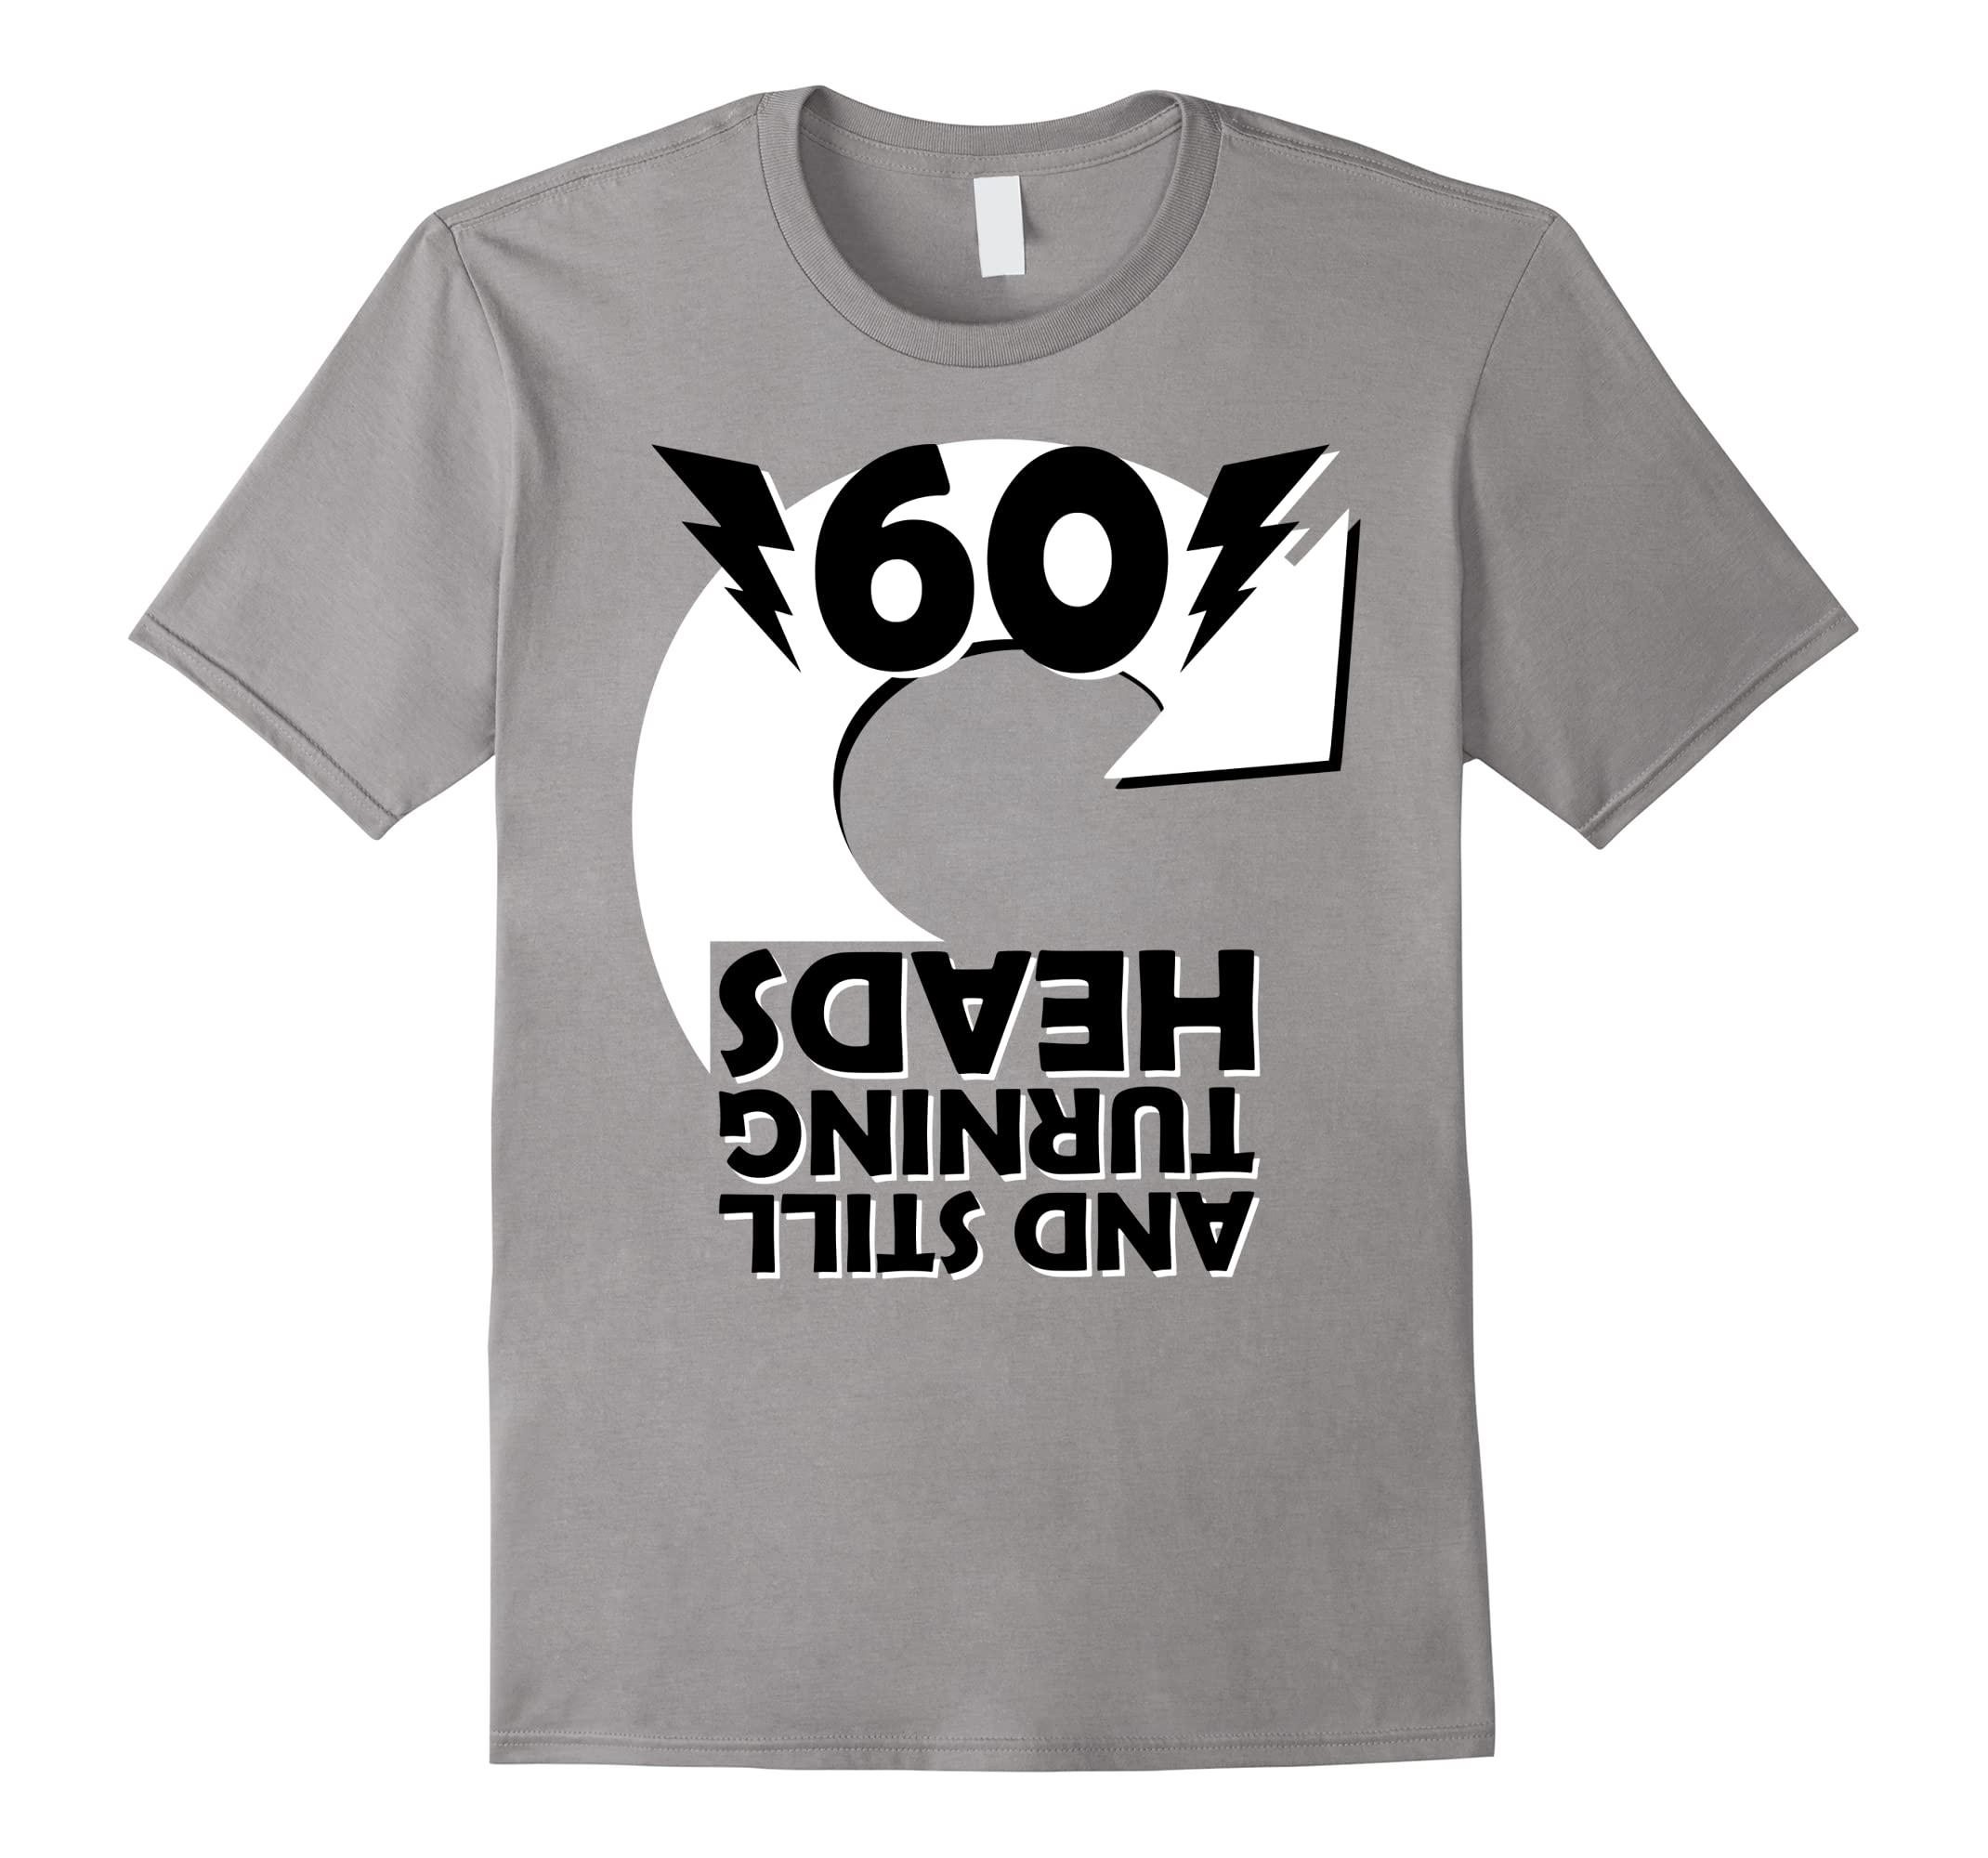 60th Birthday Vintage Made In 1958 Gift ideas T shirt-ah my shirt one gift